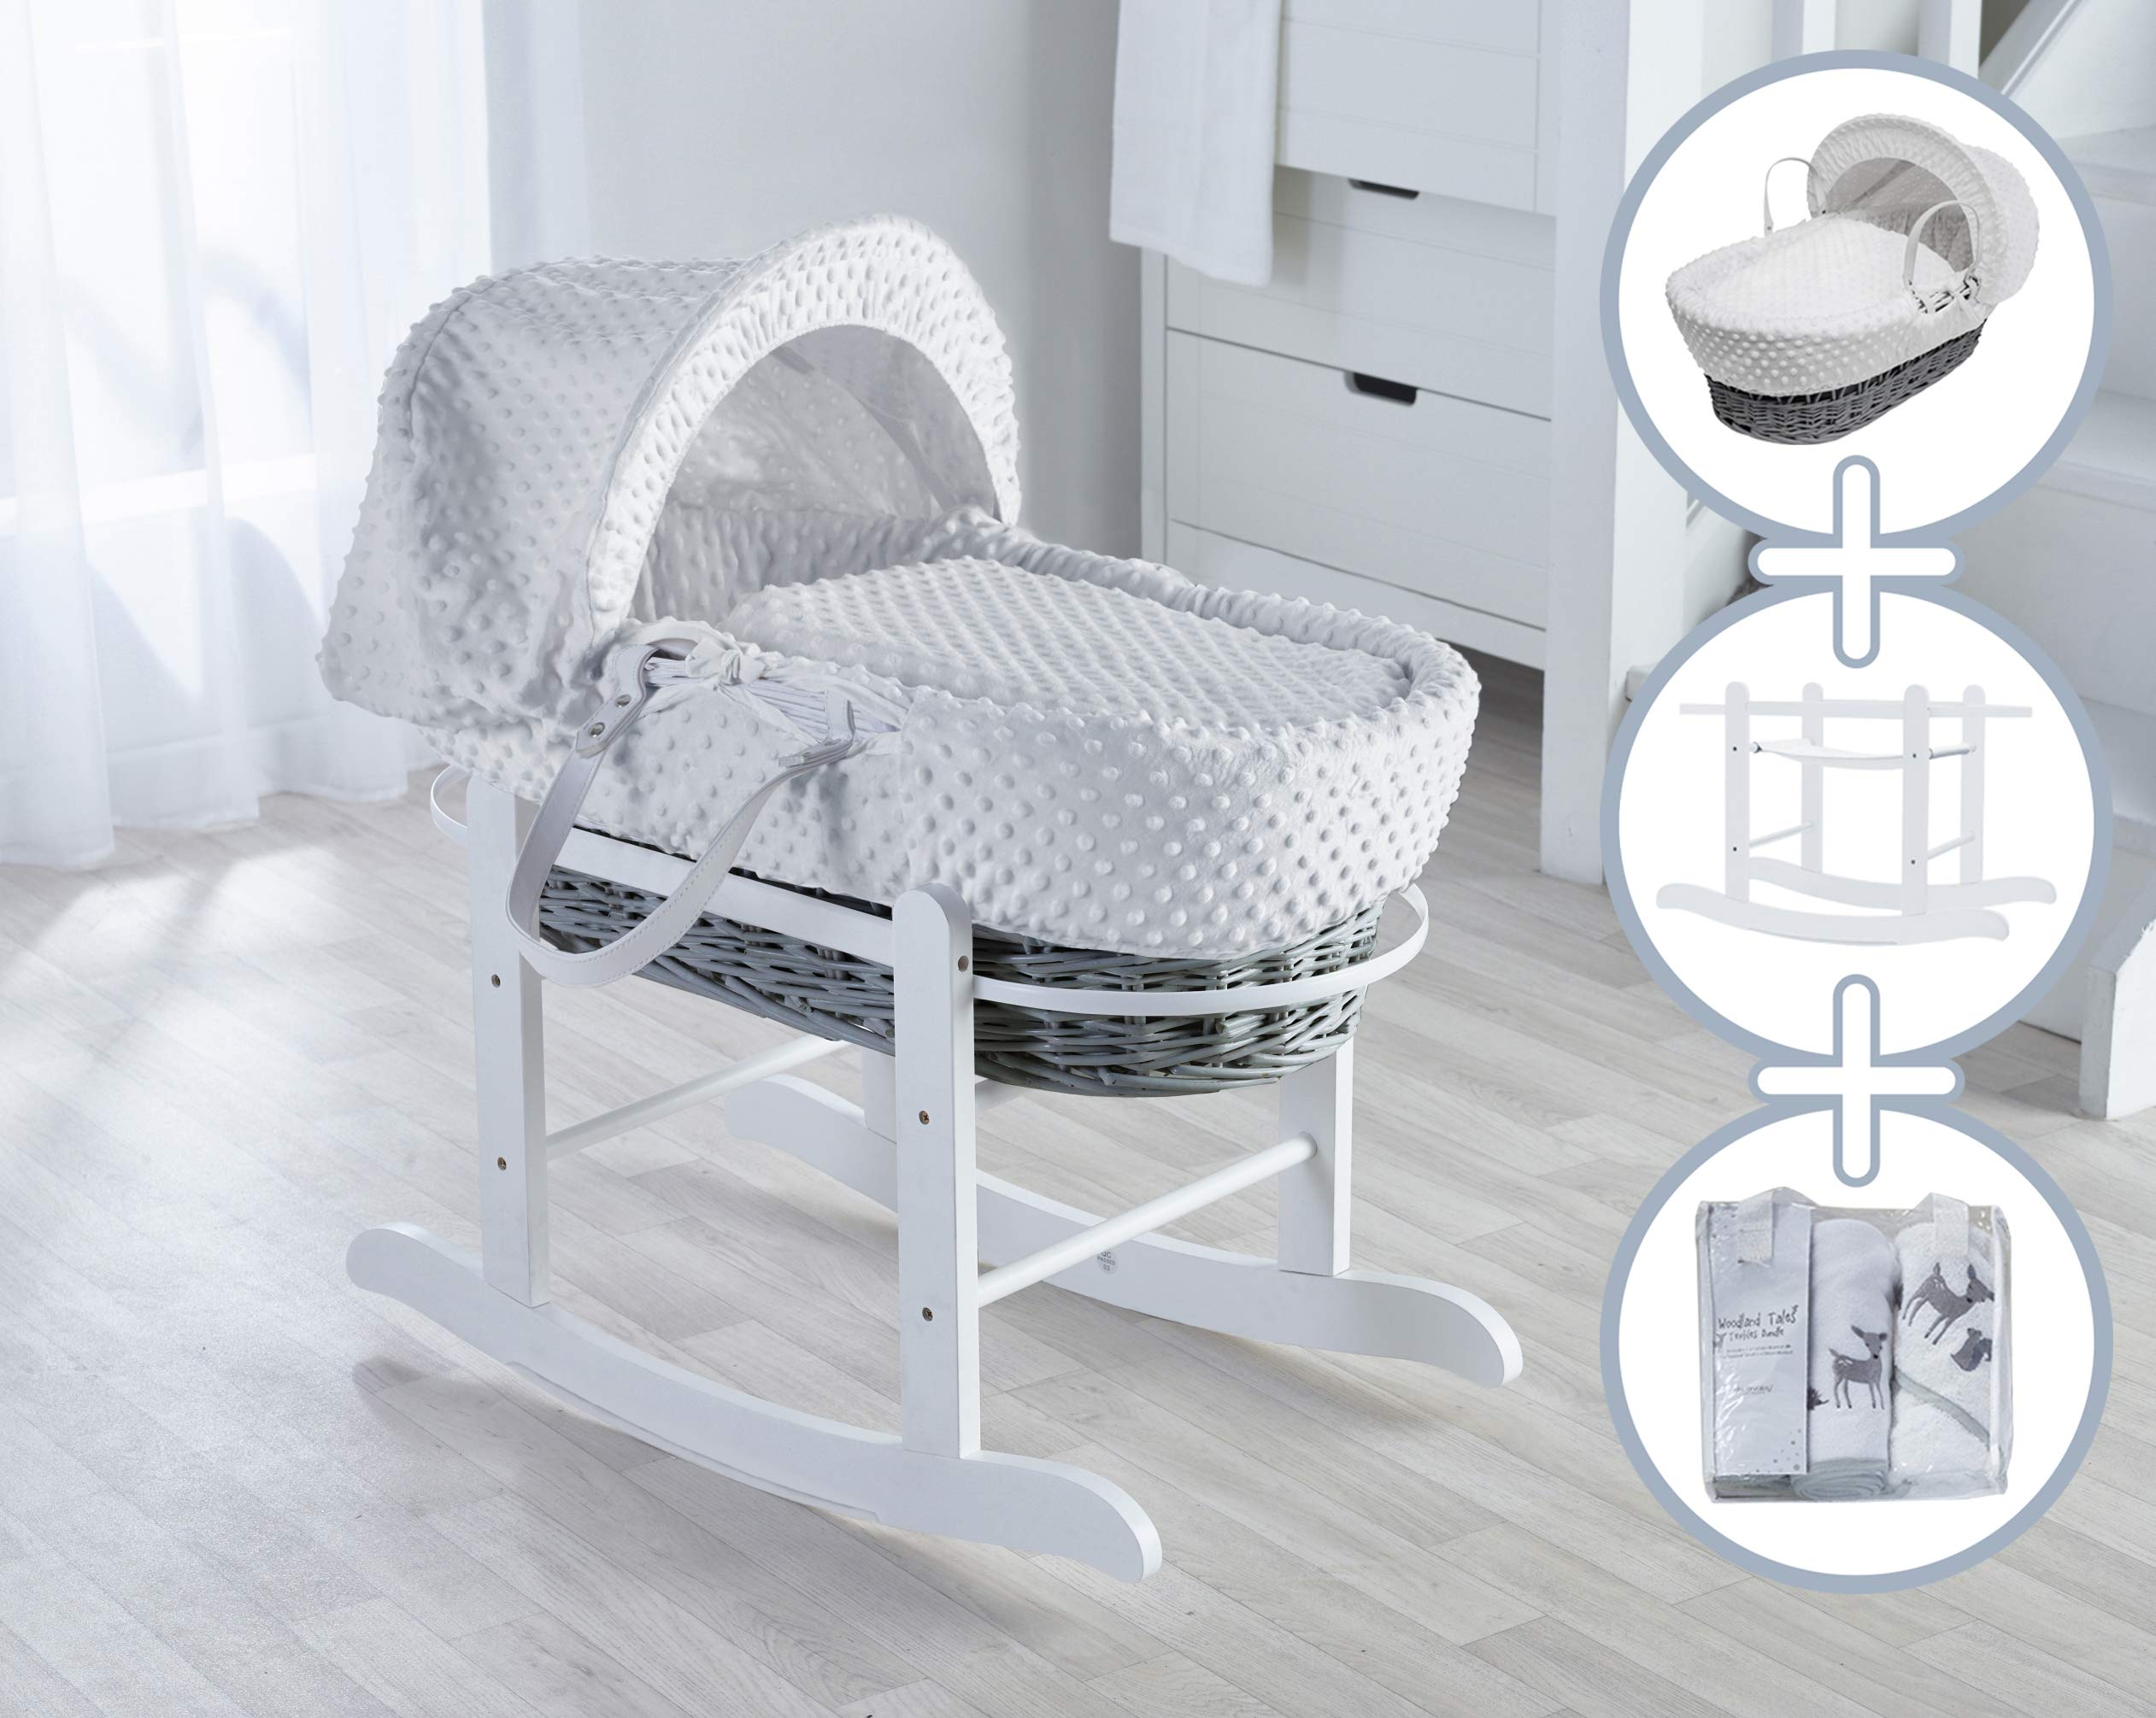 White Dimple Moses Basket, Deluxe Rocking Stand and Grey Three Little Birds Starter Set Bundle Elegant Baby Stylish Elegant Baby Exclusive moses basket Opulent cotton blend fabric with a luxurious soft padded surround Baby Essentials Bundle containing hooded towel, fleece blanket and cellular blanket 1